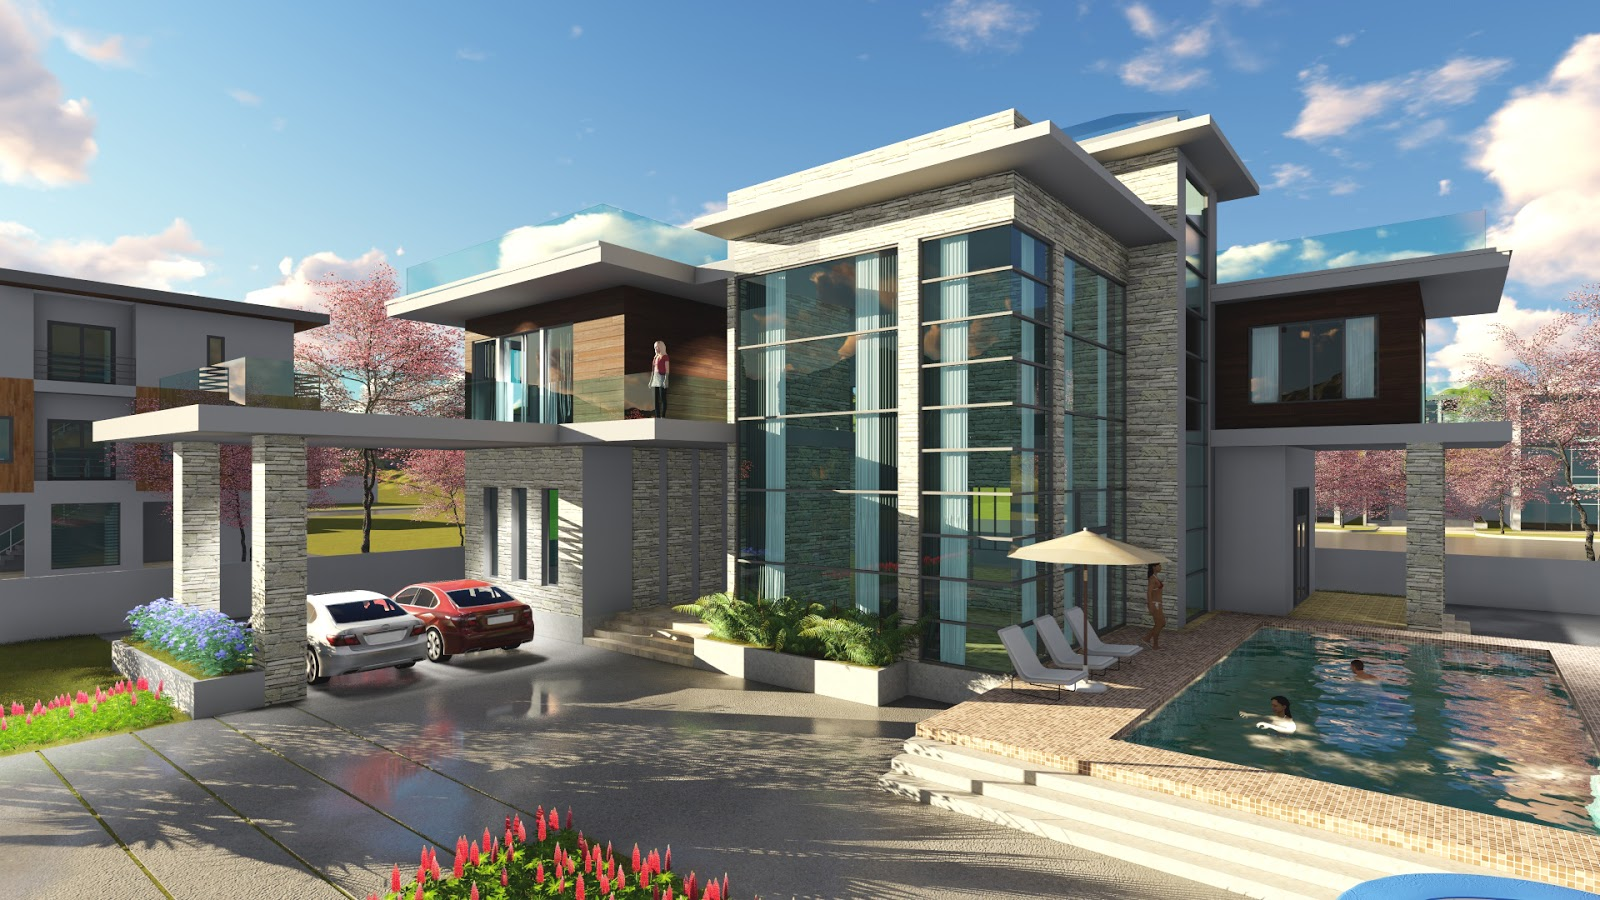 Sketchup drawing 4 bedroom exclusive modern villa design size sam architect - Modern vila design ...